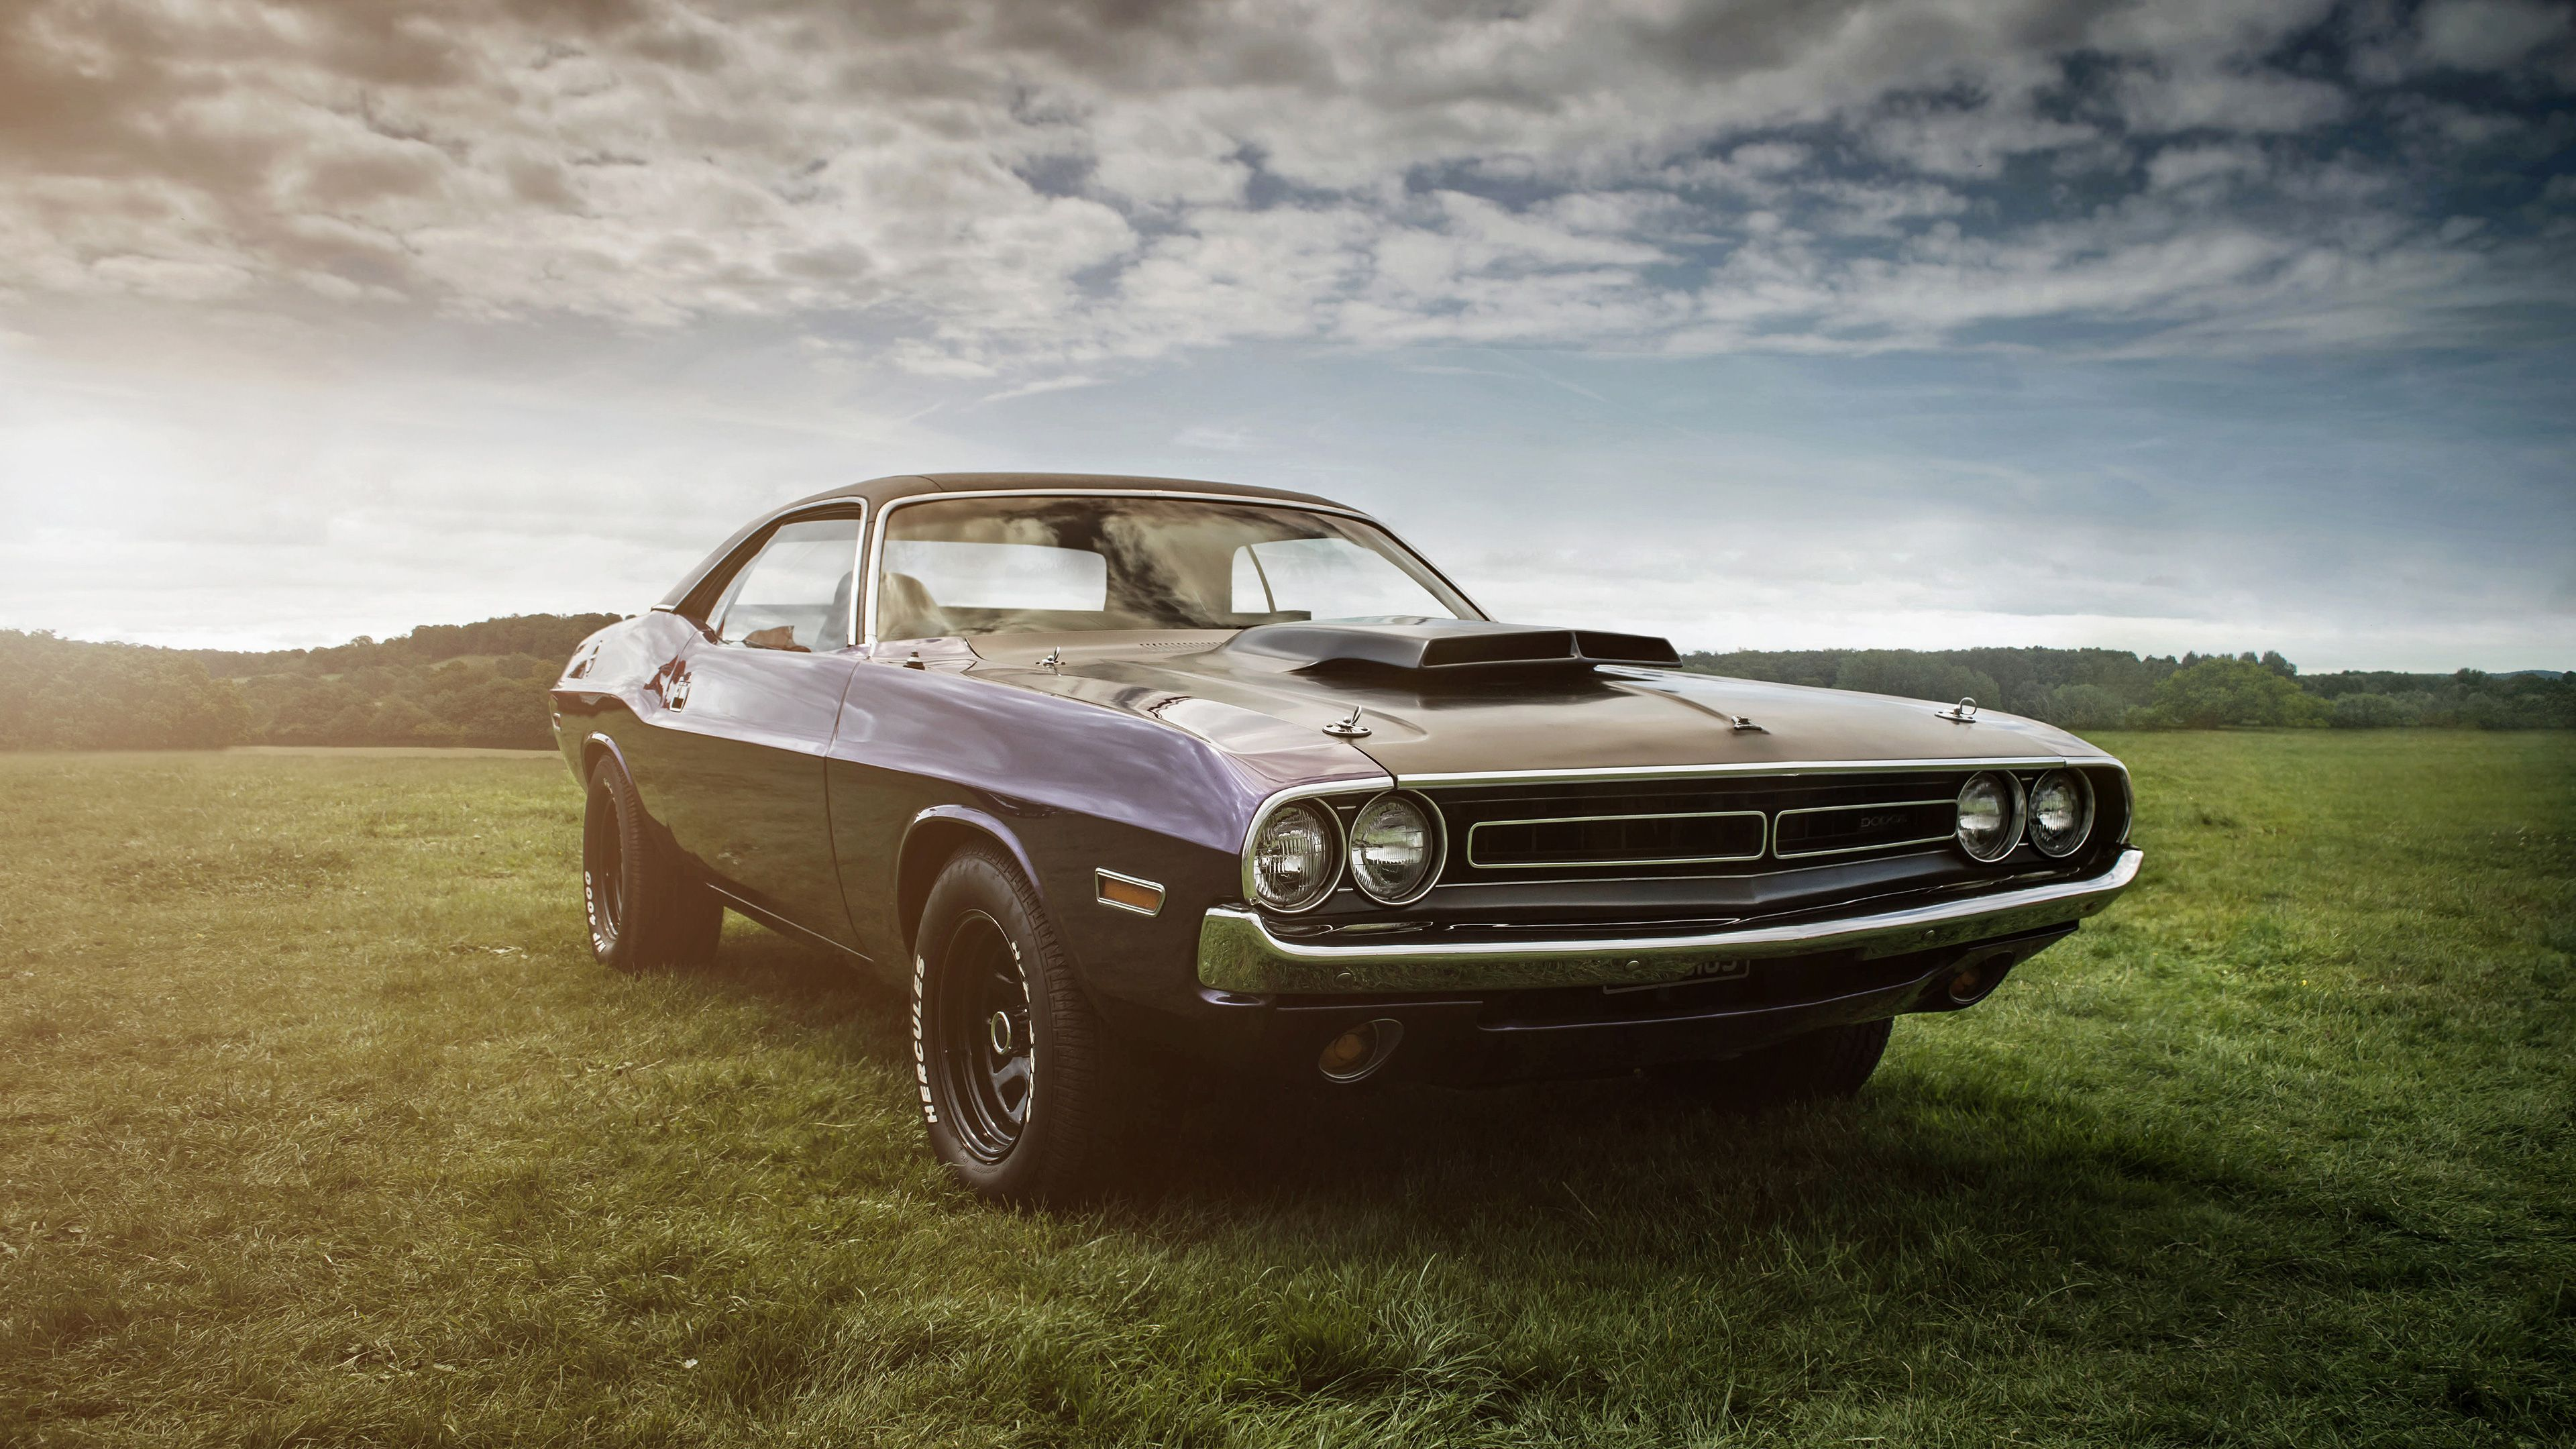 Dodge Challenger Hd 4k Vintage Cars Wallpapers Muscle Cars Wallpapers Hd Wallpapers Dodge Challenger Wallpaper Dodge Challenger Muscle Cars Classic Cars Usa